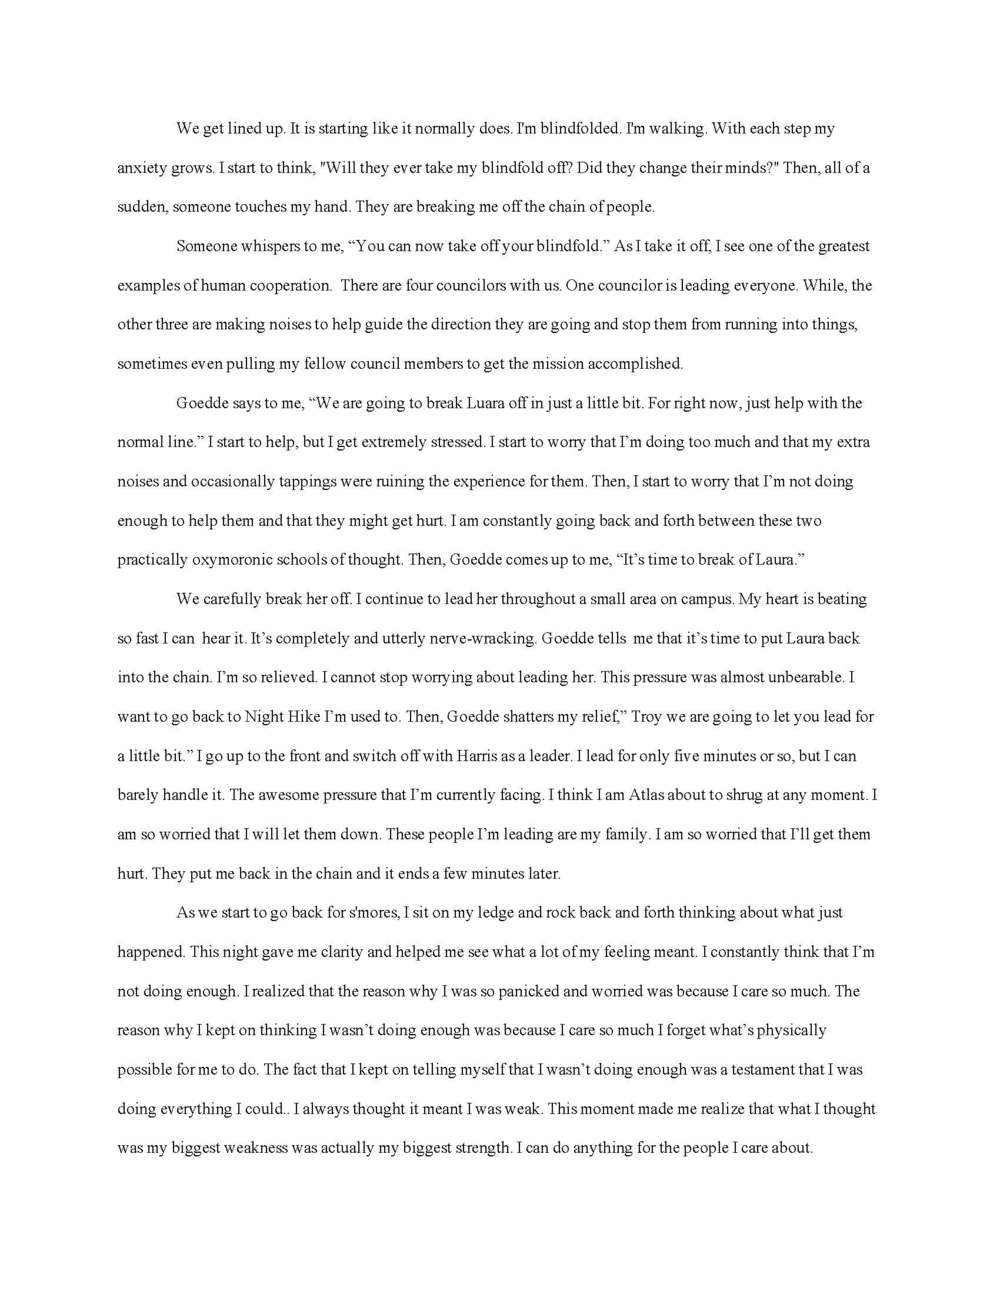 entrance essay college entrance essay troy wiegand cover letter  also college entrance essay troy wiegand actual writing sample google docs page